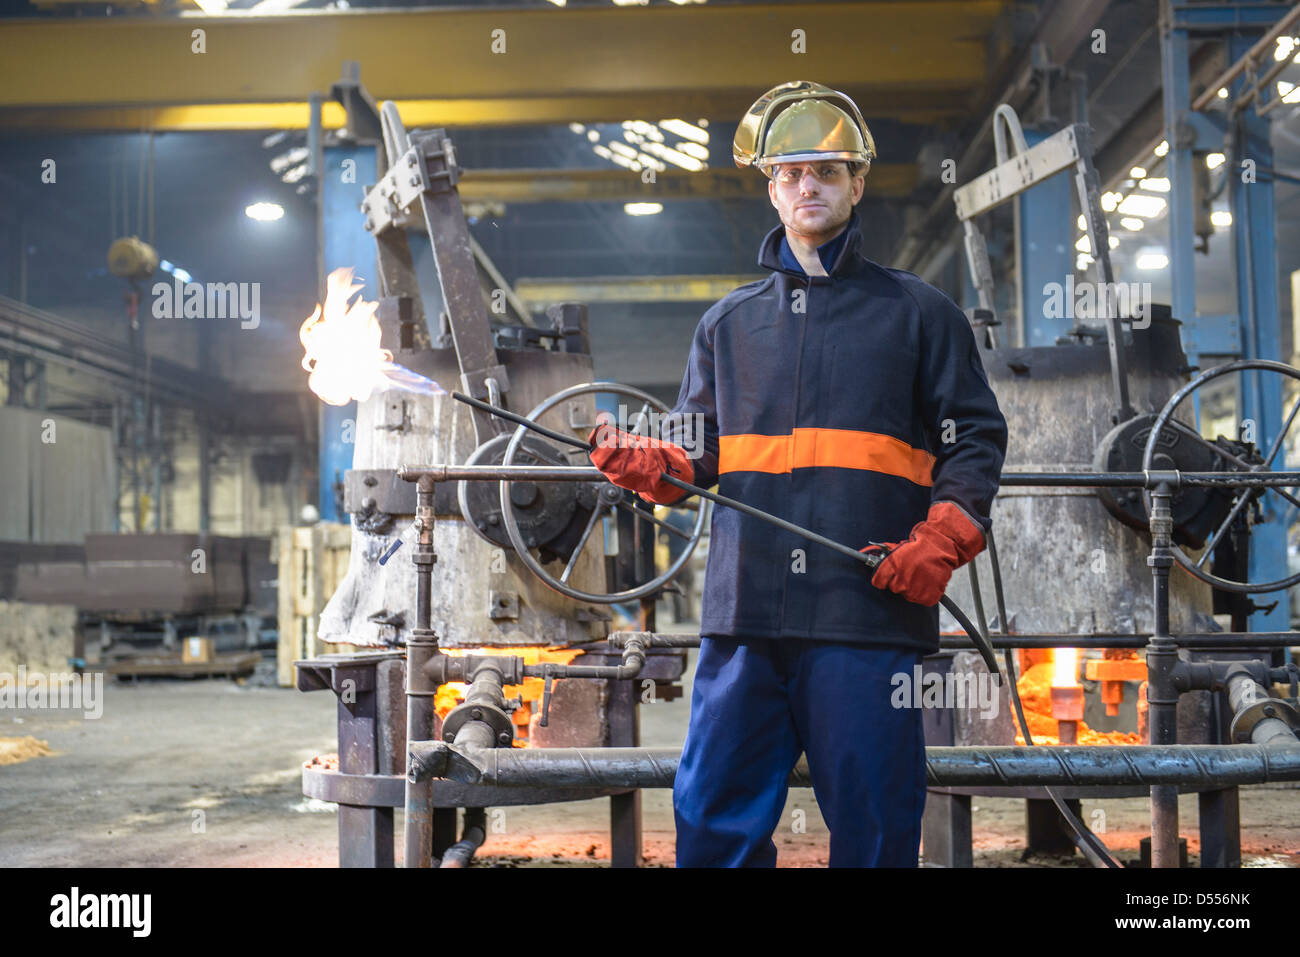 Worker holding flame gun in foundry - Stock Image